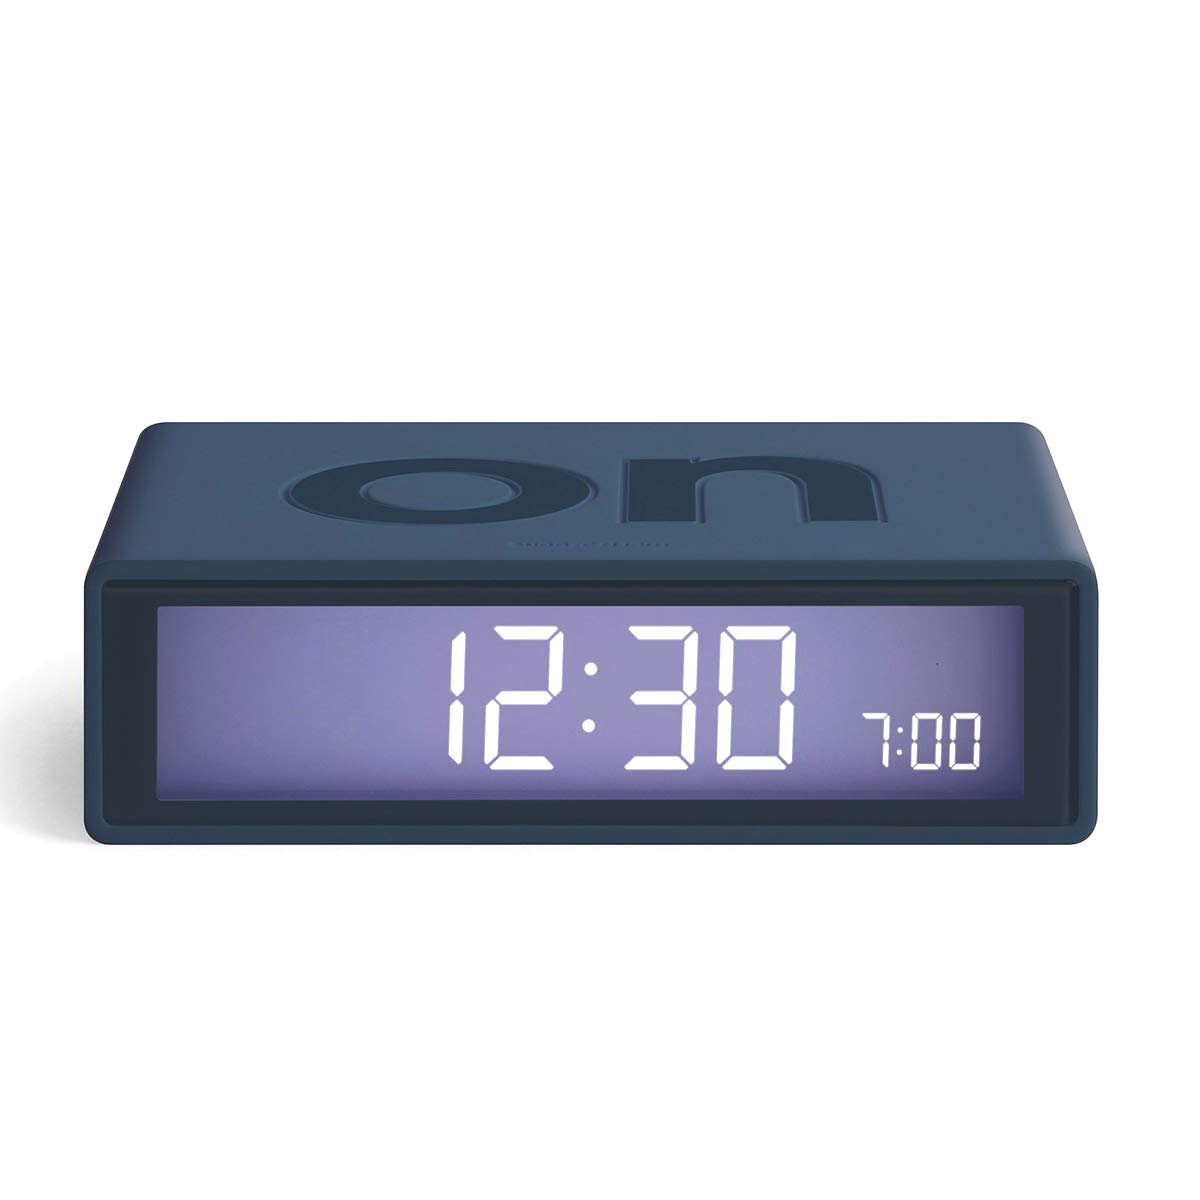 LEXON Flip LCD alarm clock LR130BF7 dark blue | The Design Gift Shop